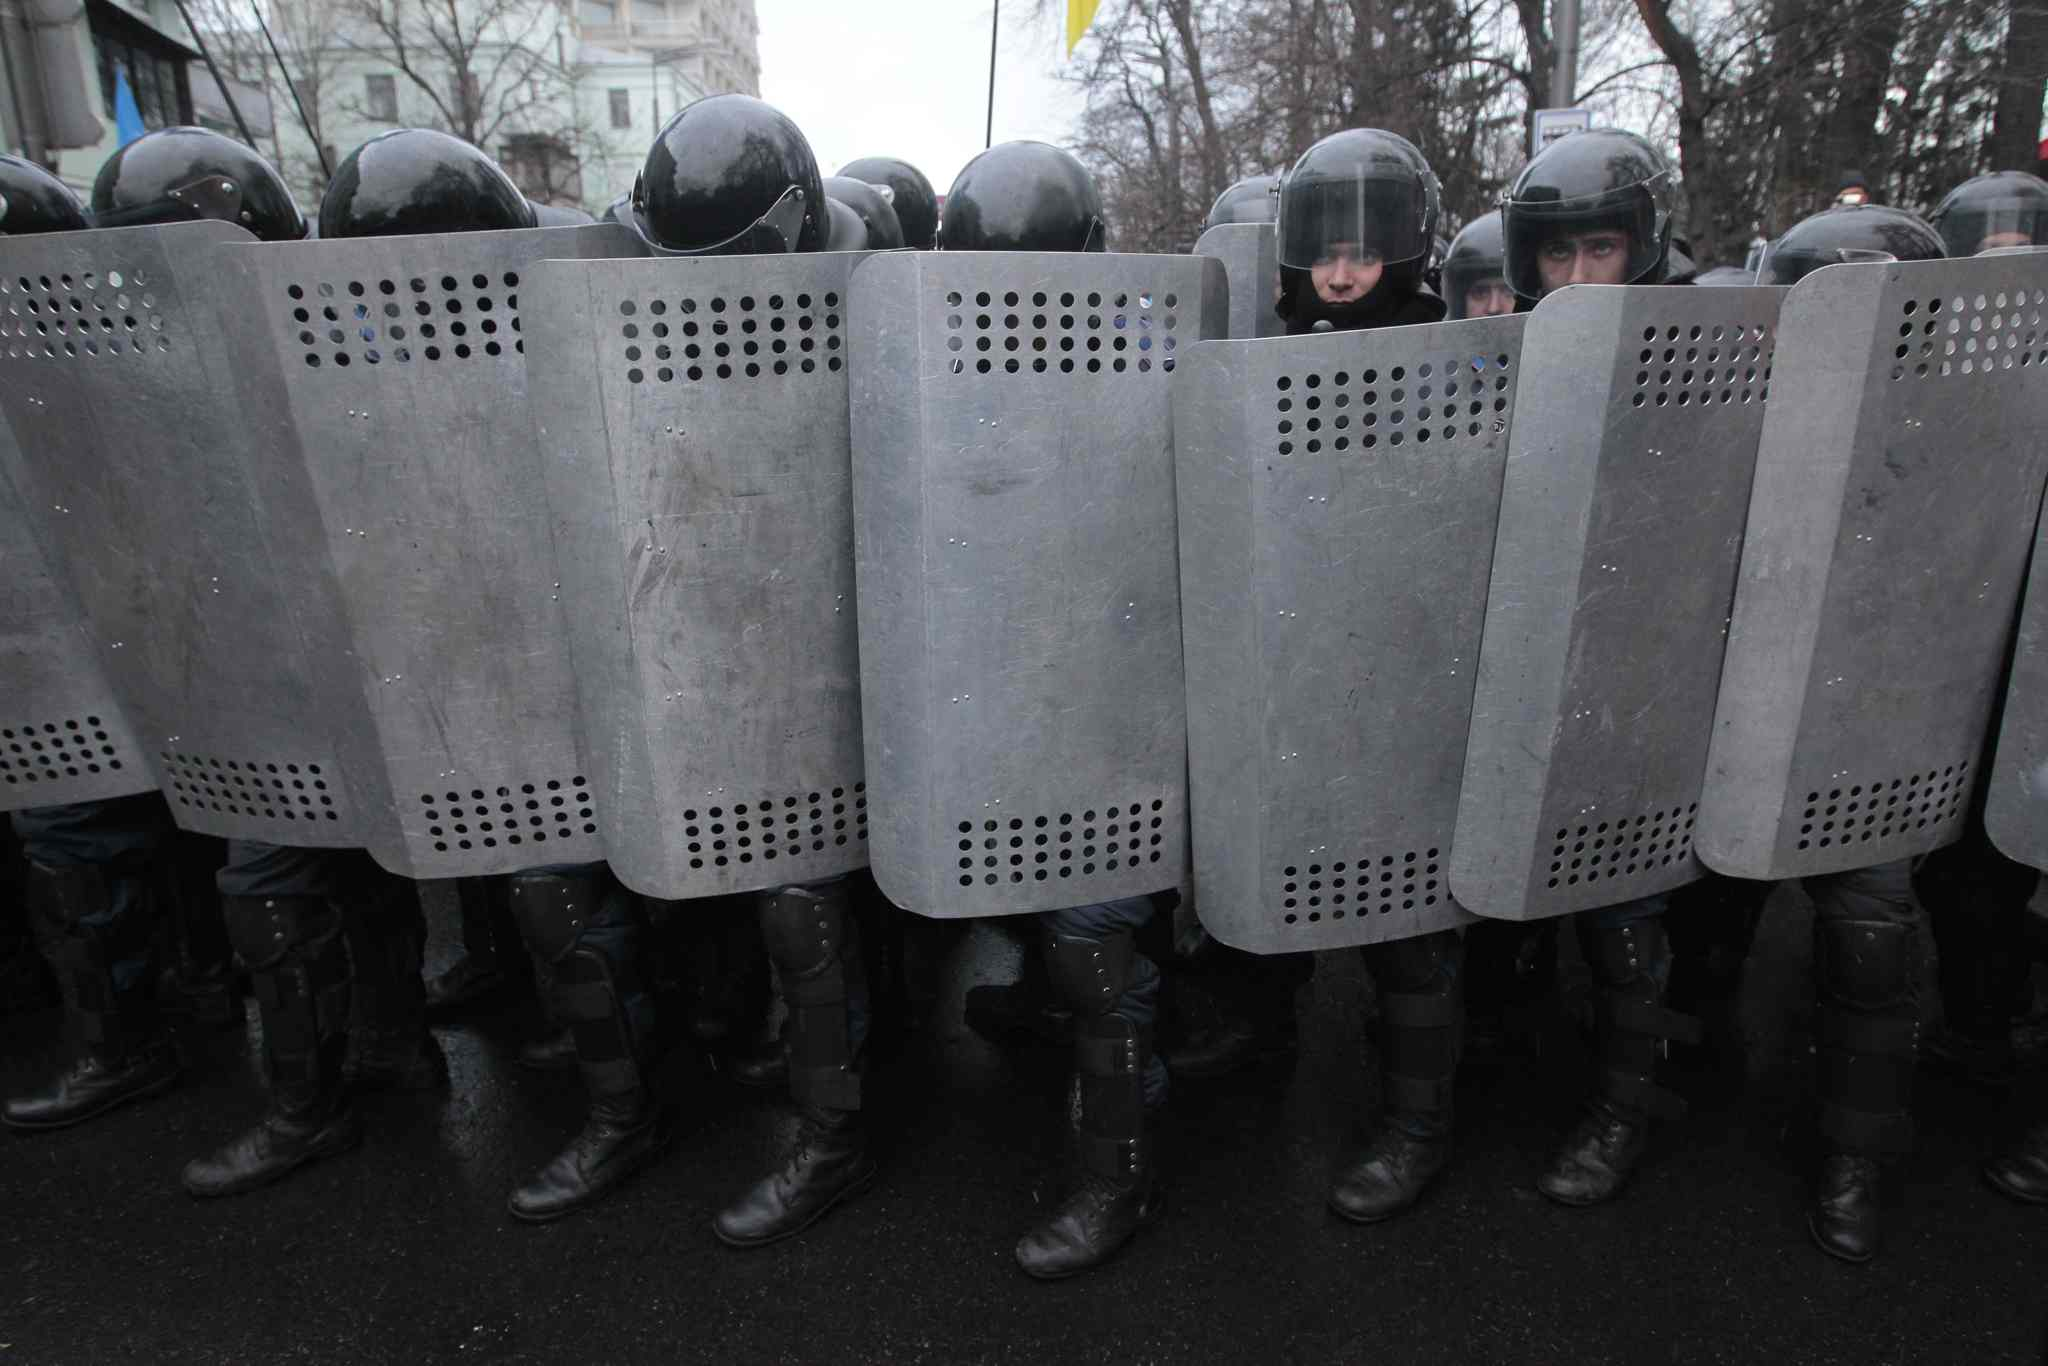 Riot police protect government buildings from Pro-European Union activists.